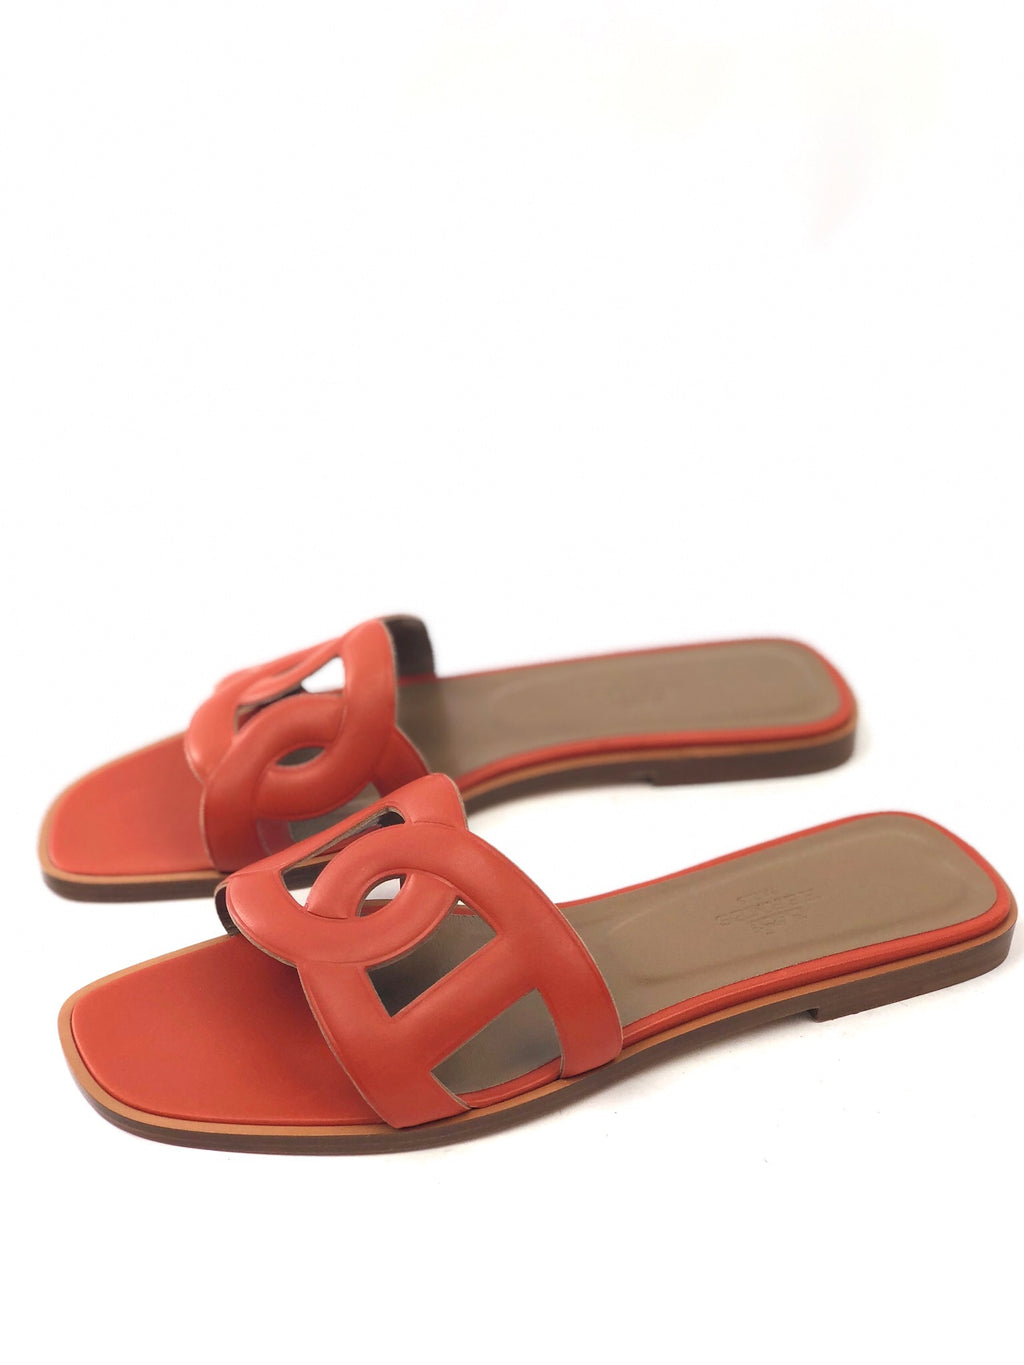 Hermès New Omaha Calfksin Sandals in Orange brûlée Size 37.5